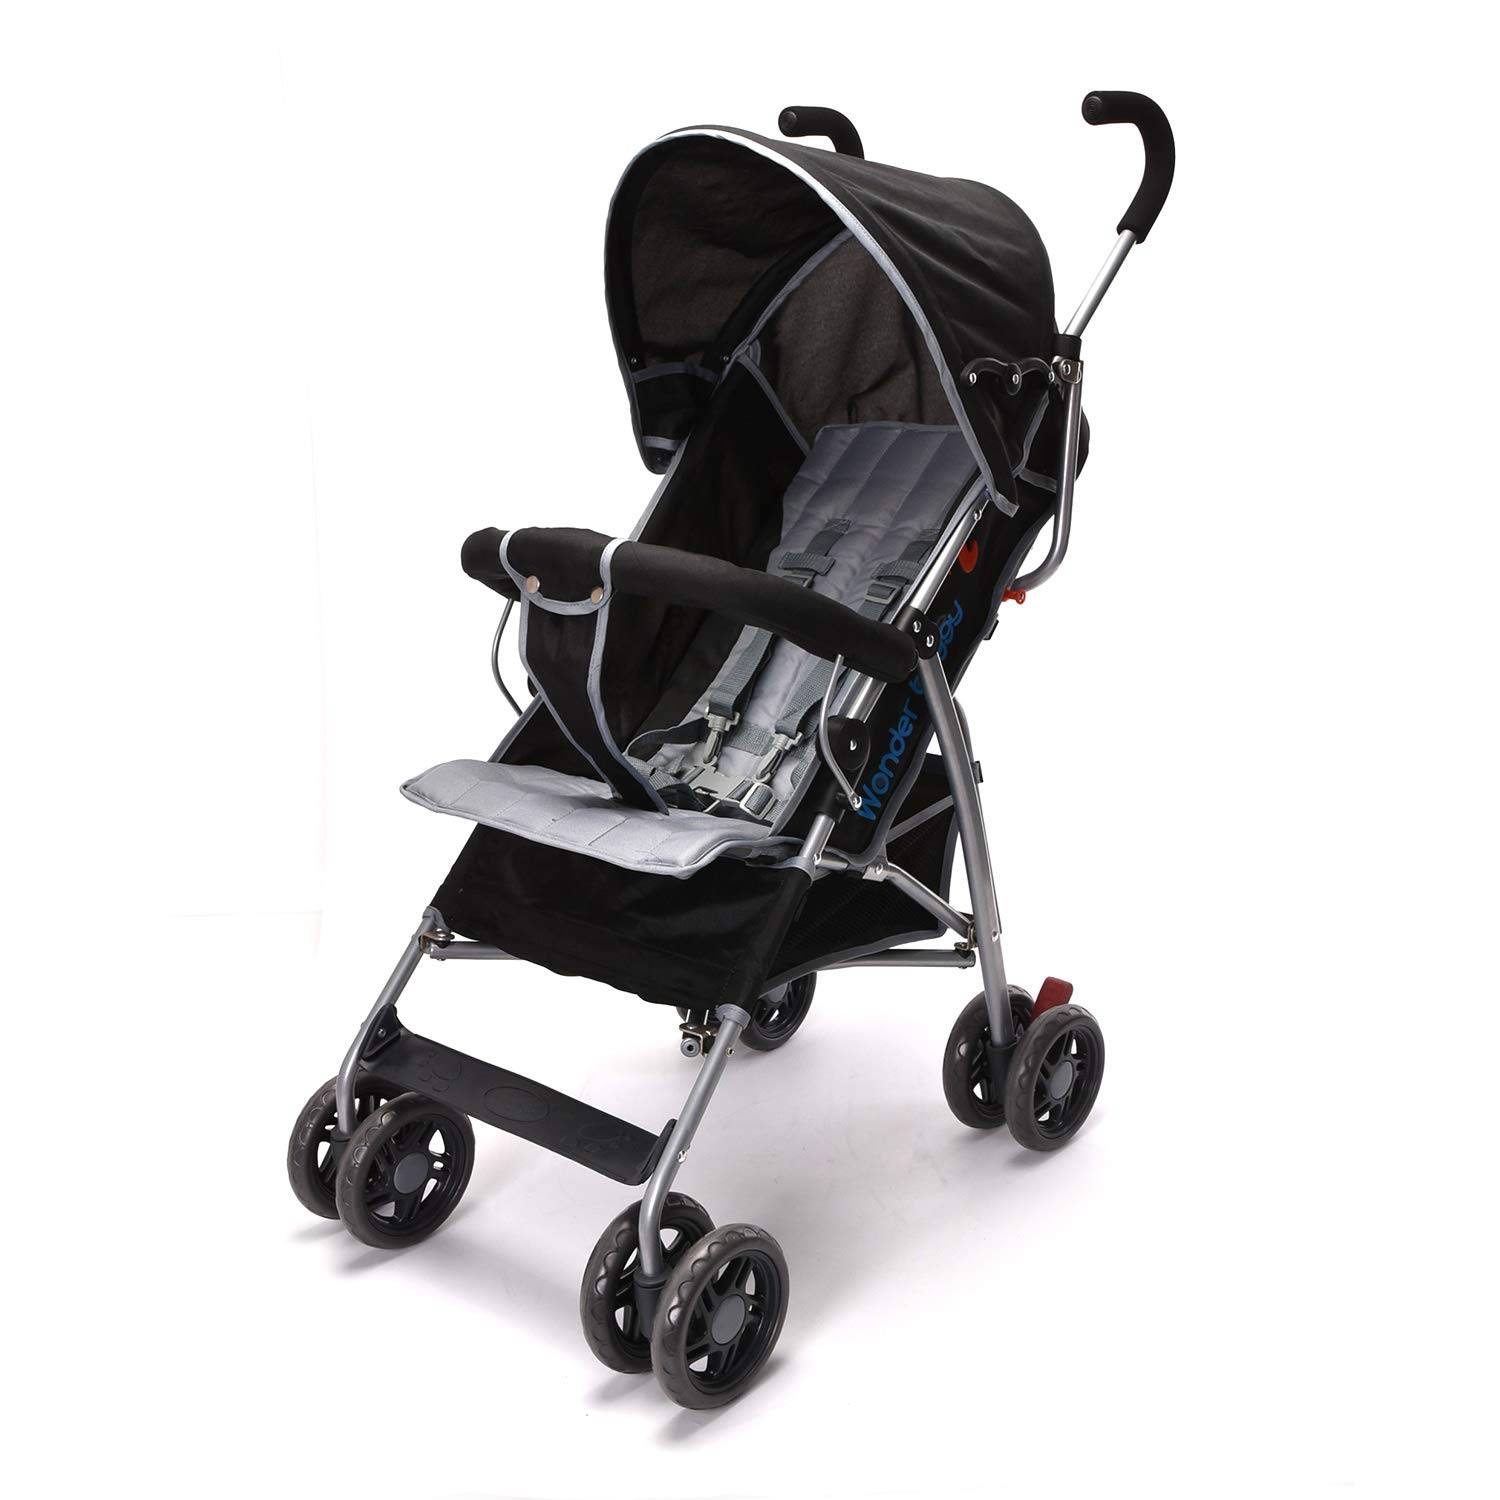 Wonder buggy Lightweight Stroller, Convenience Umbrella Baby Stroller with Front Bar Bumper, Rounded Hood and Basket, Two Position Foldable Infant Stroller Pushchair (Black)